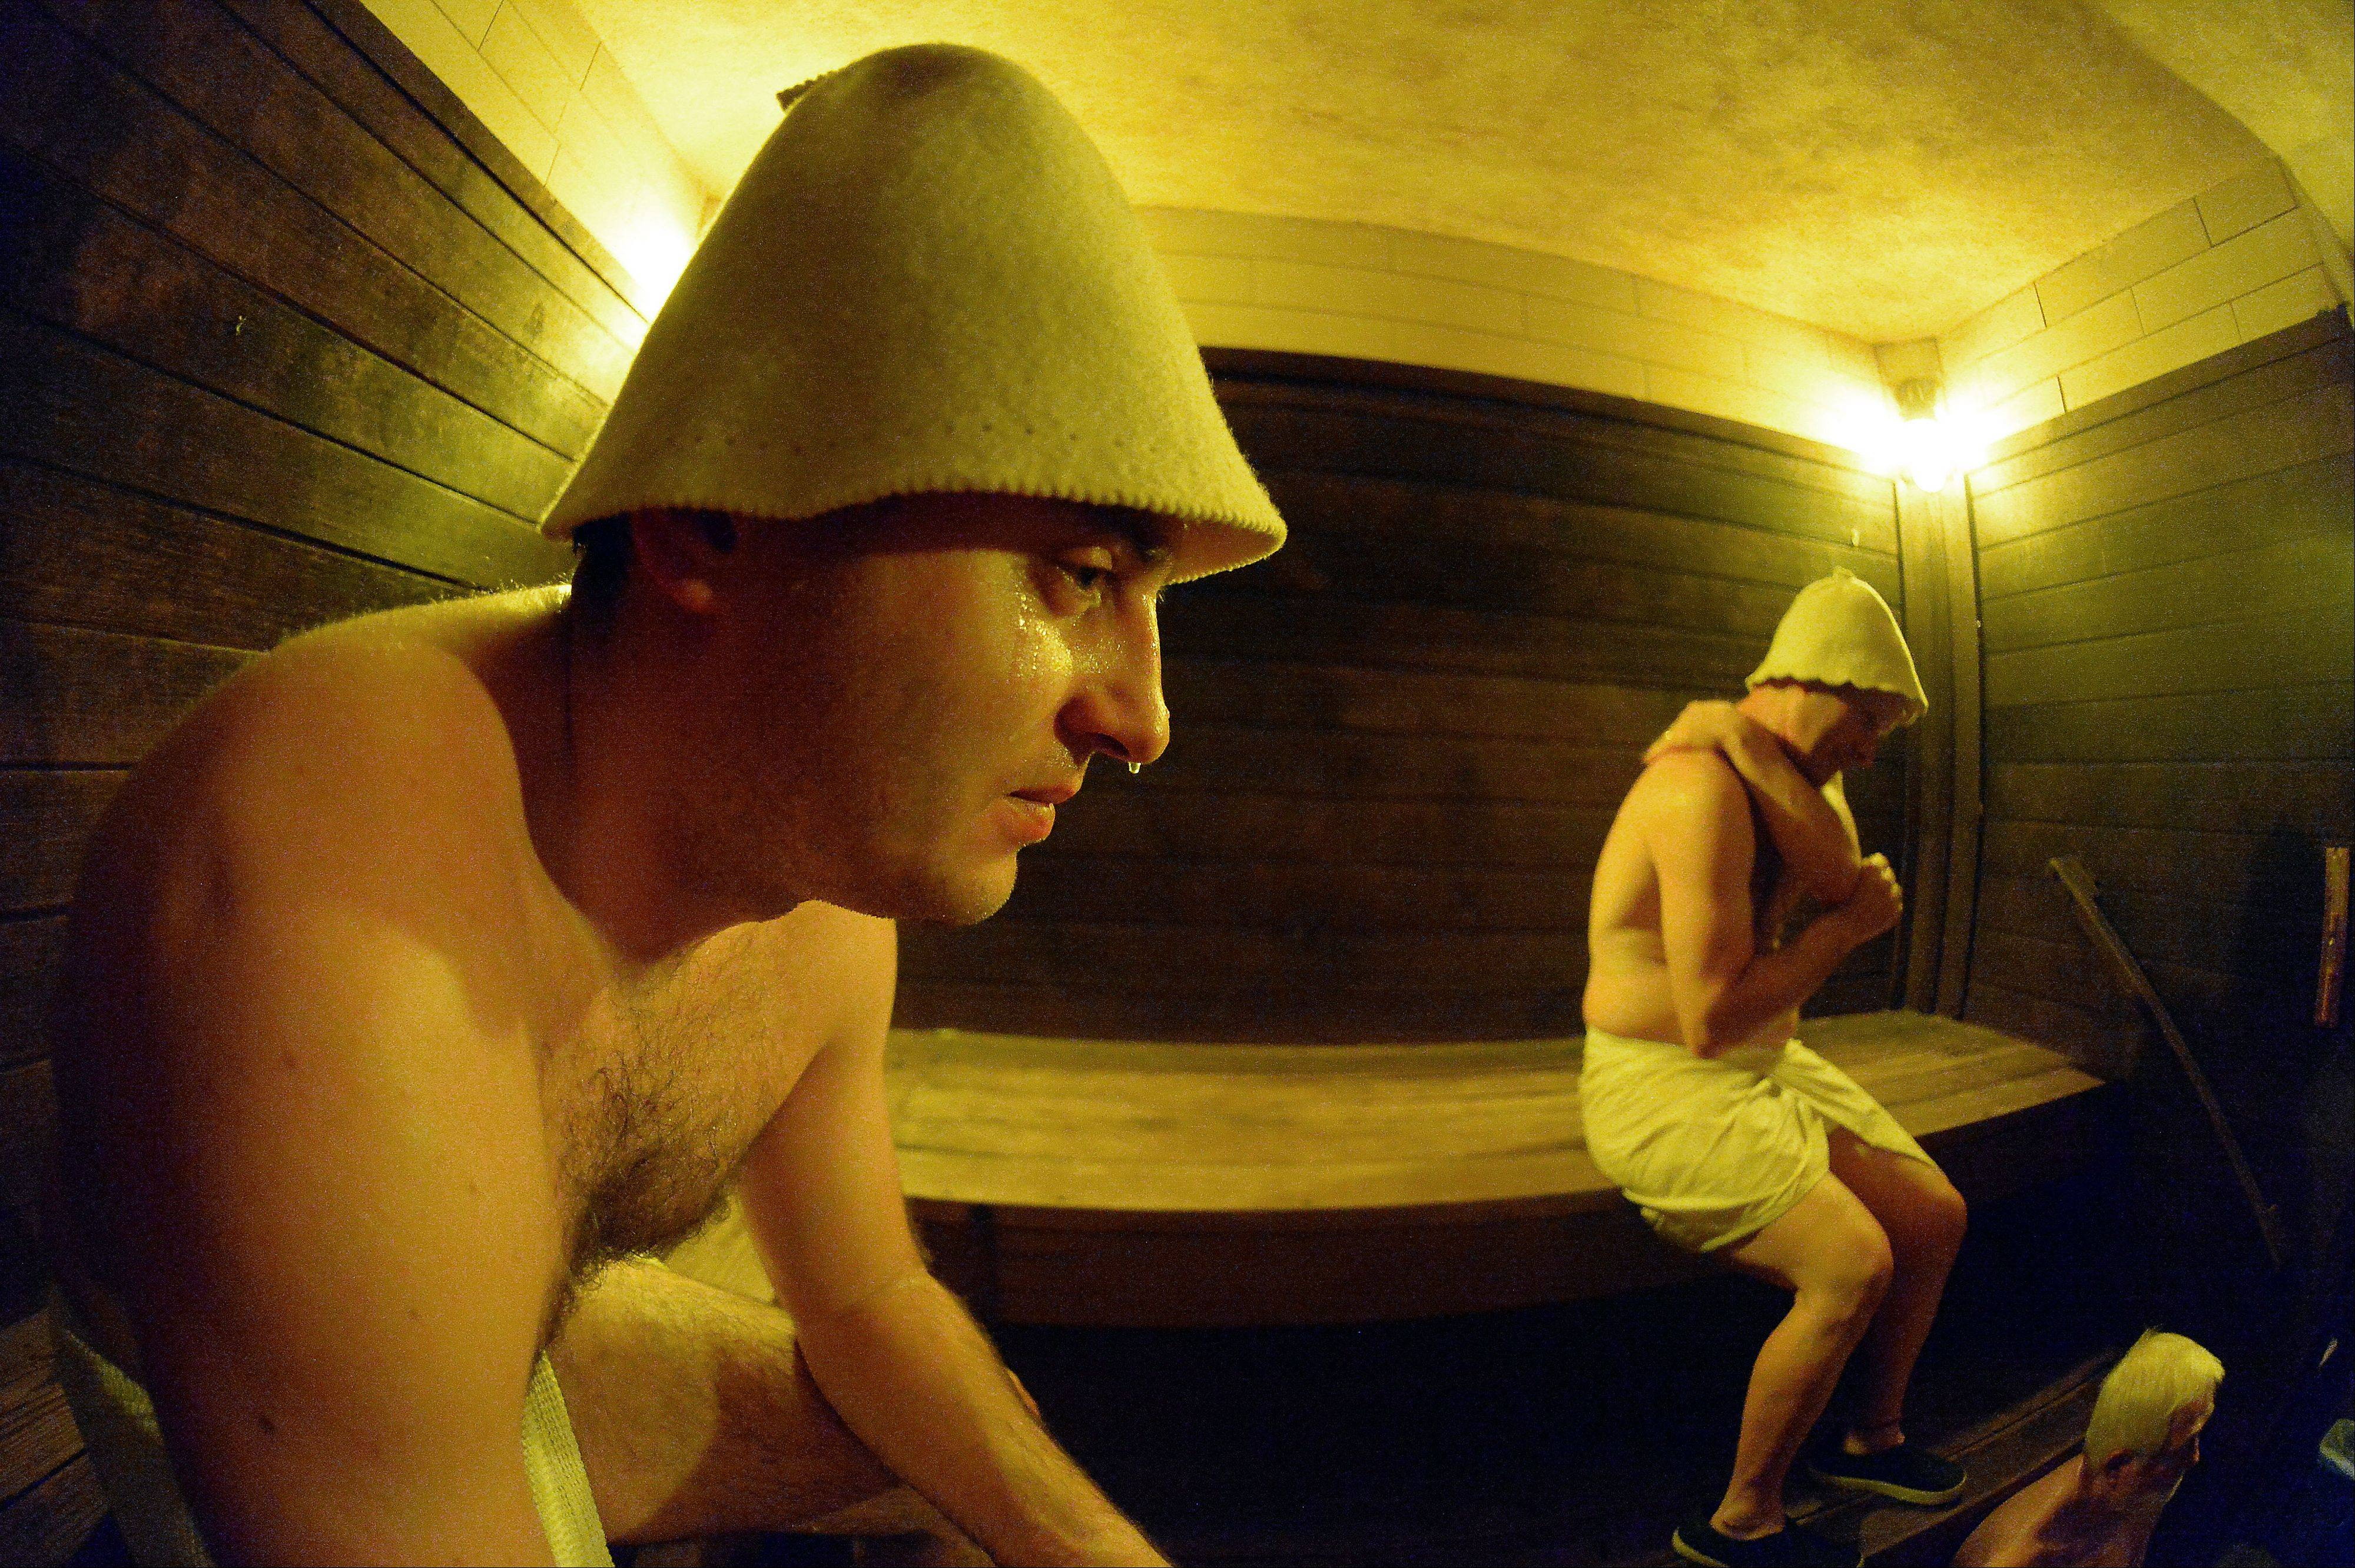 With sweat dripping off his nose, Igor Mikhno, 32, of Wheeling takes in the 210-degree heat of Chicago's Sweatlodge old-world sauna.